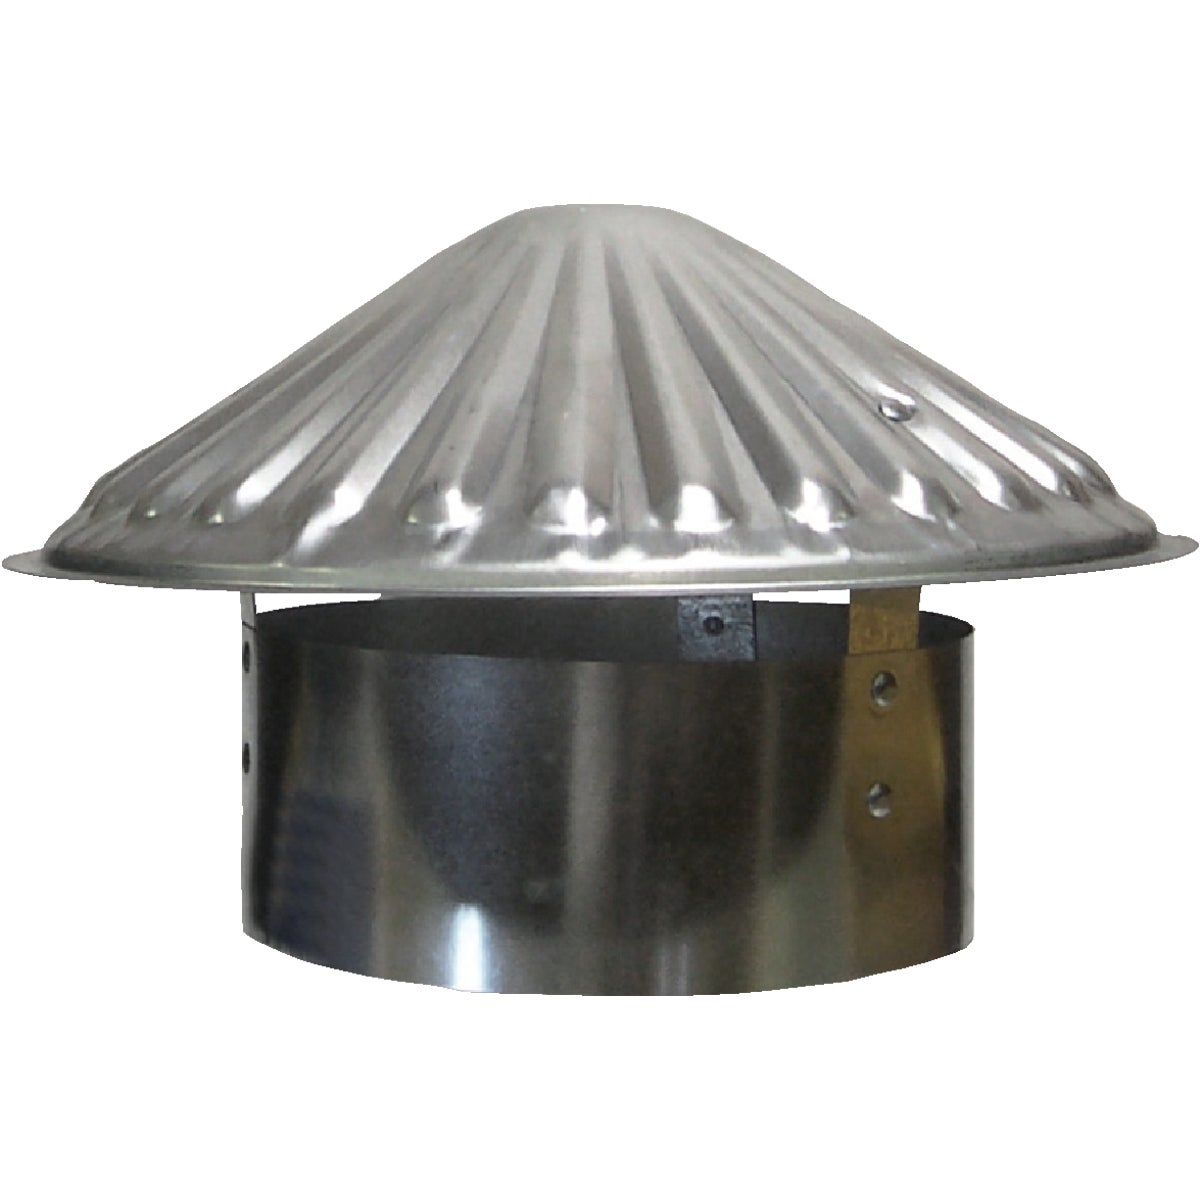 "7"" VENT PIPE CAP - D-287 by S & K Products Co"